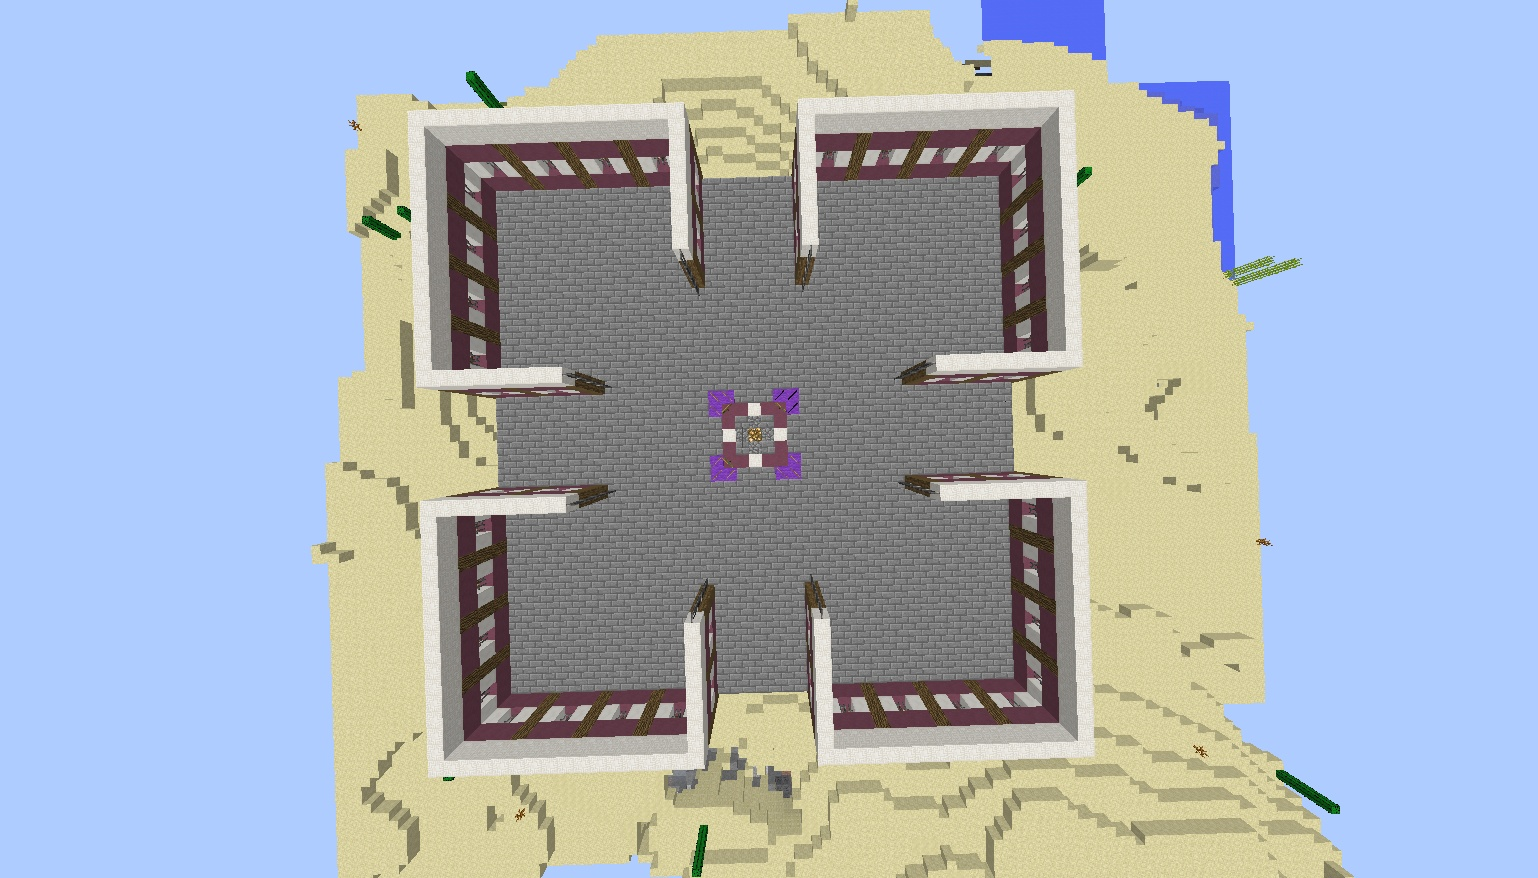 Spawning minecraft items pixel